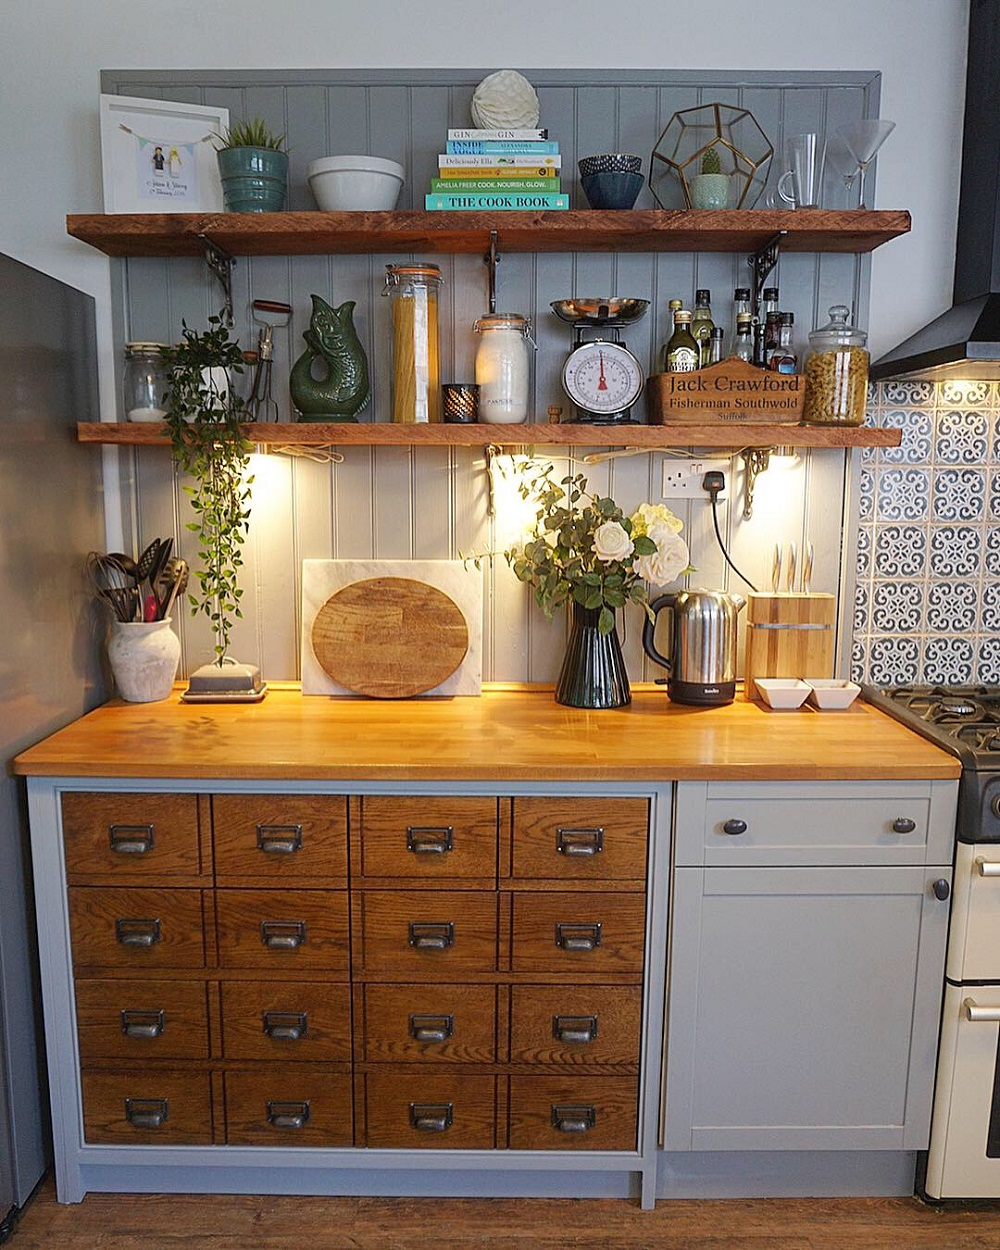 t3-63 How to use a vintage pharmacy cabinet in your home decor